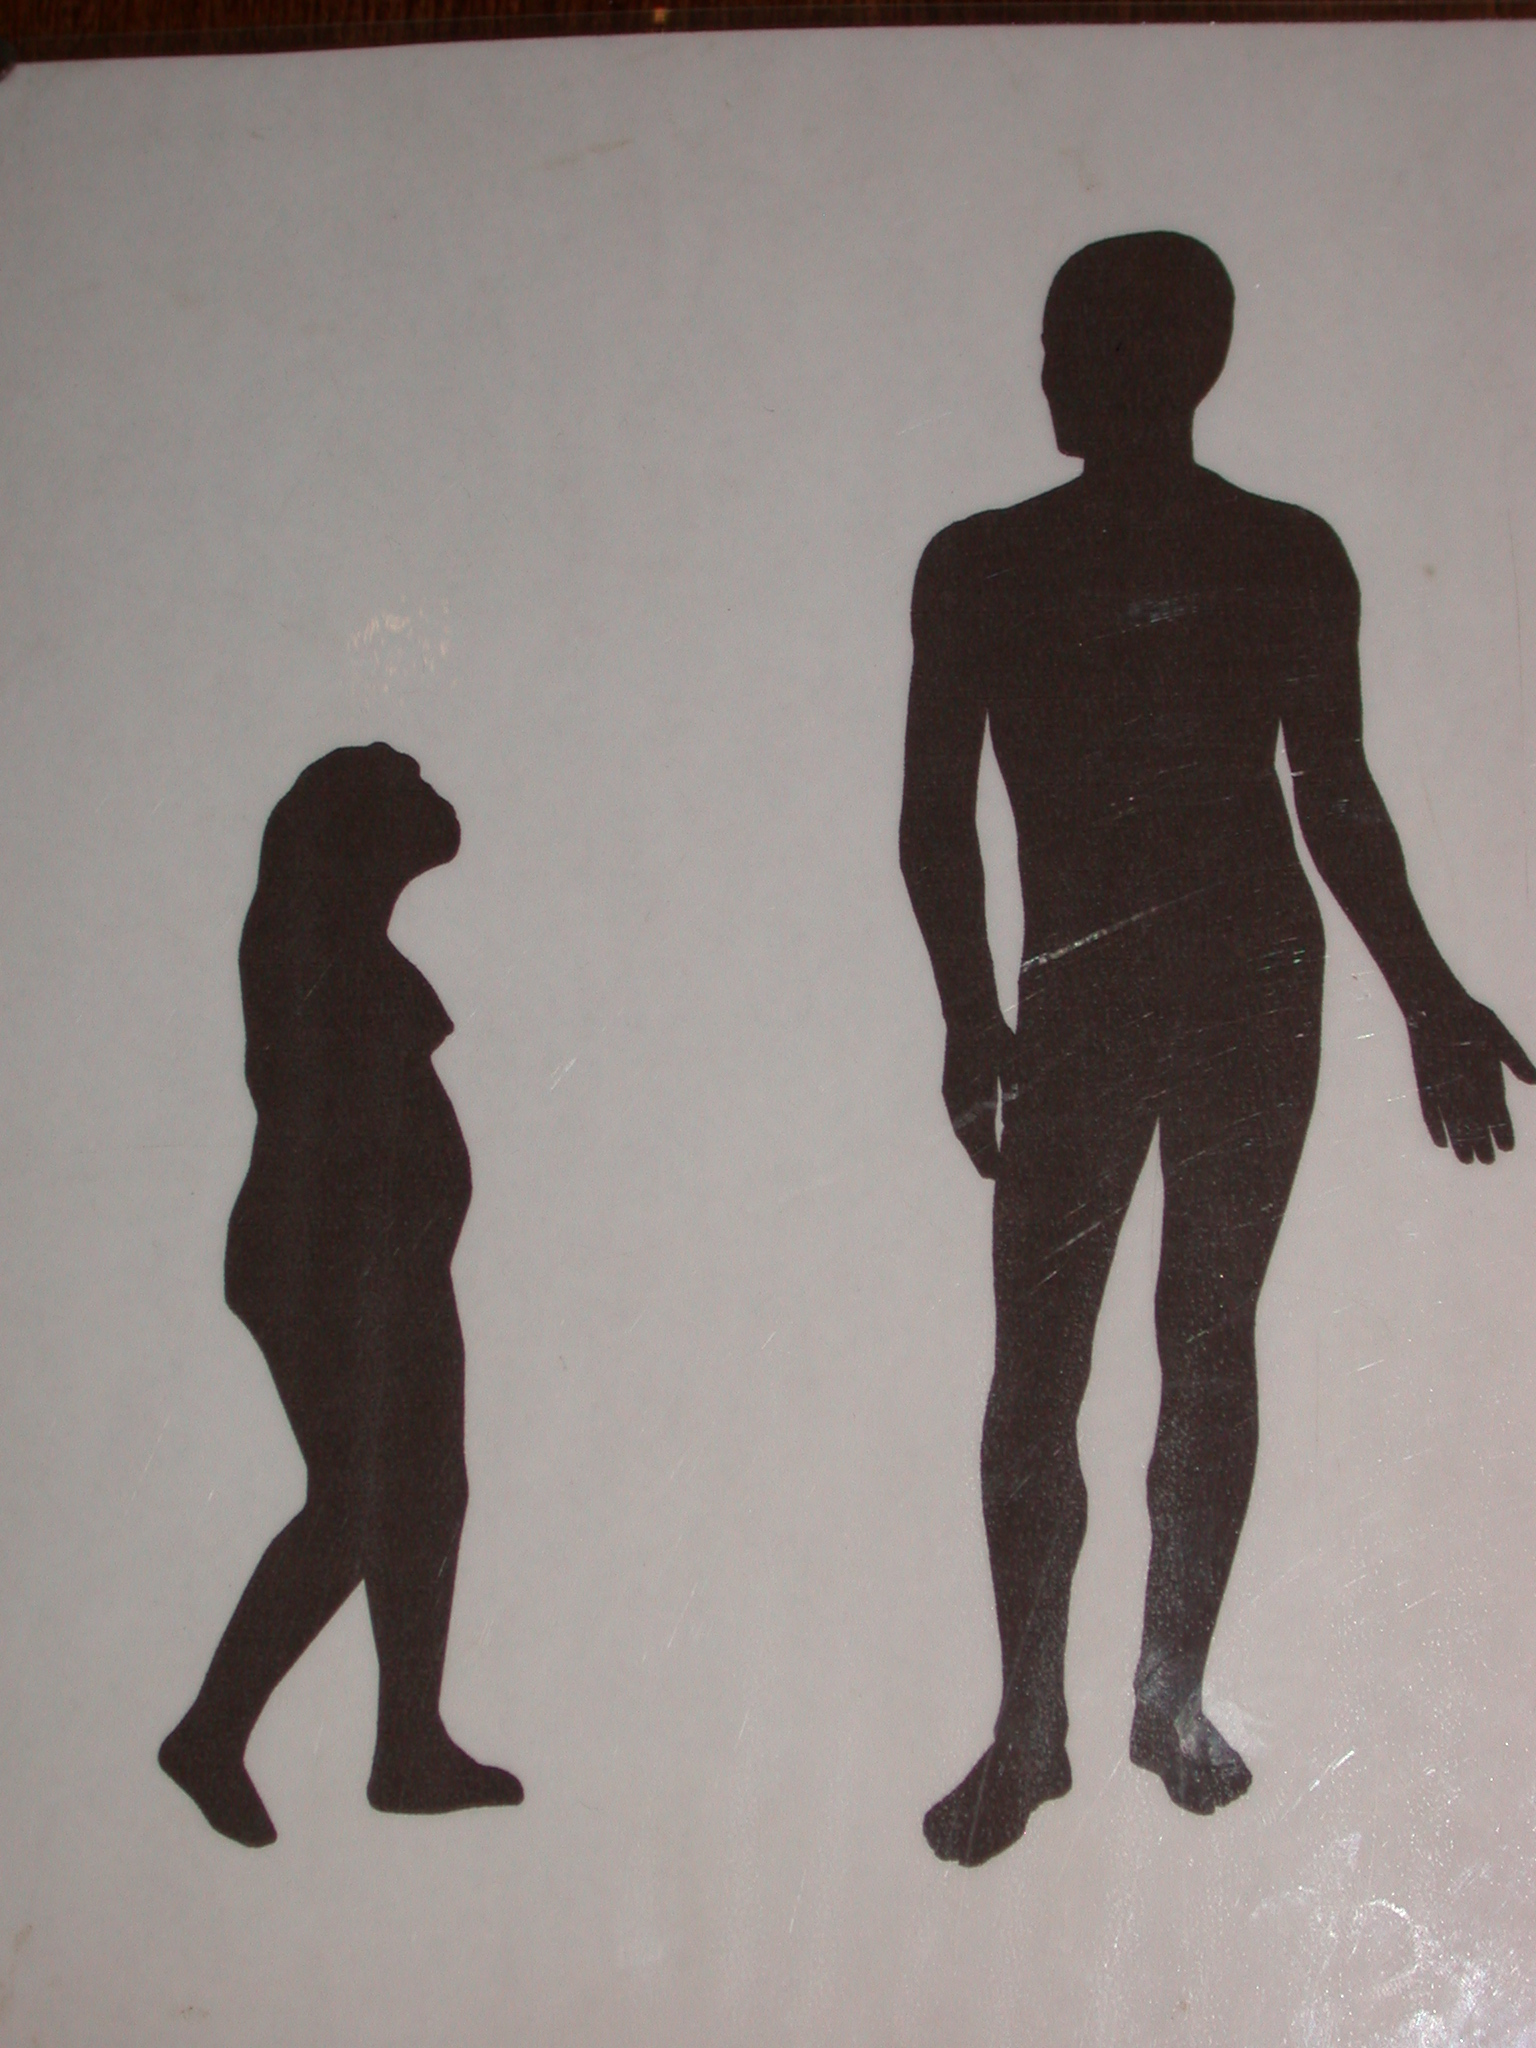 Relative Size of Lucy and Modern Human, National Museum, Addis Ababa, Ethiopia